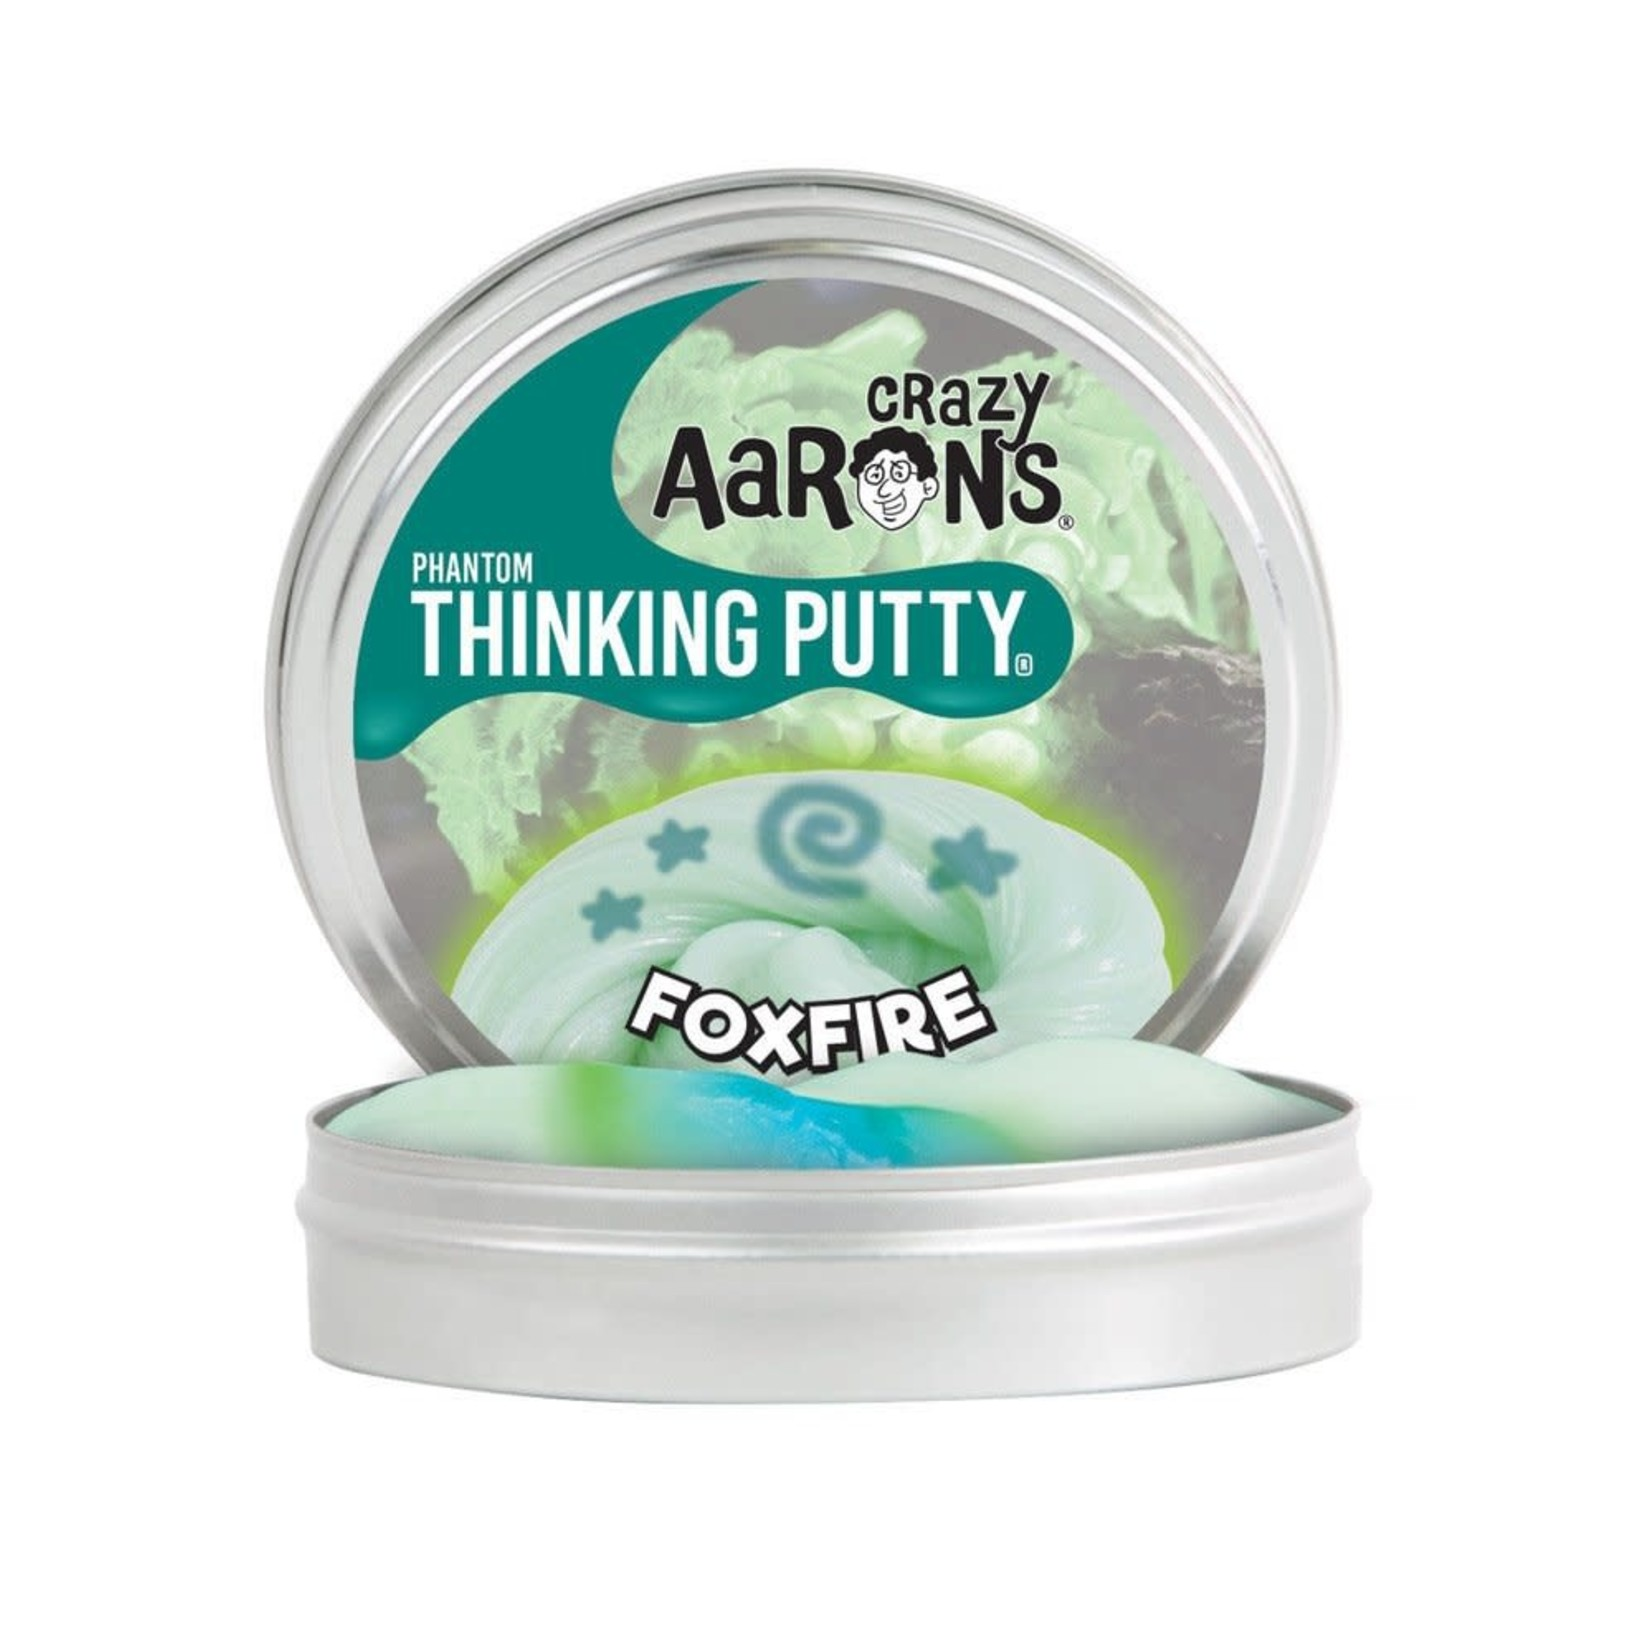 "Crazy Aarons Thinking Putty 4"" Foxfire"